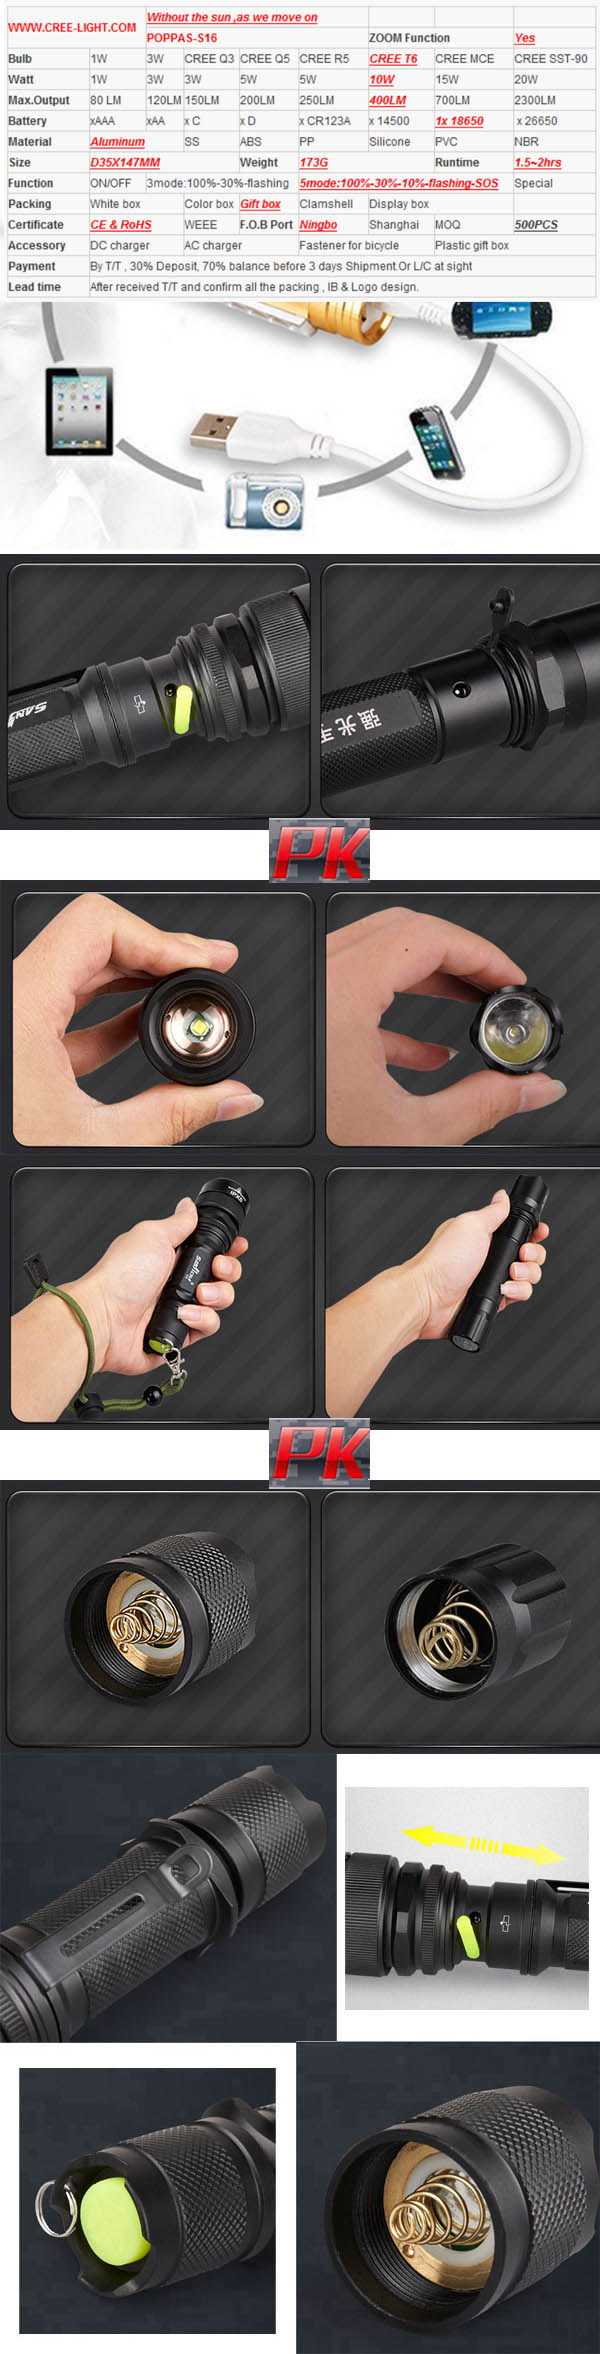 Telescopic Zoom CREE T6 Tactical LED Rechargeable Flashlight